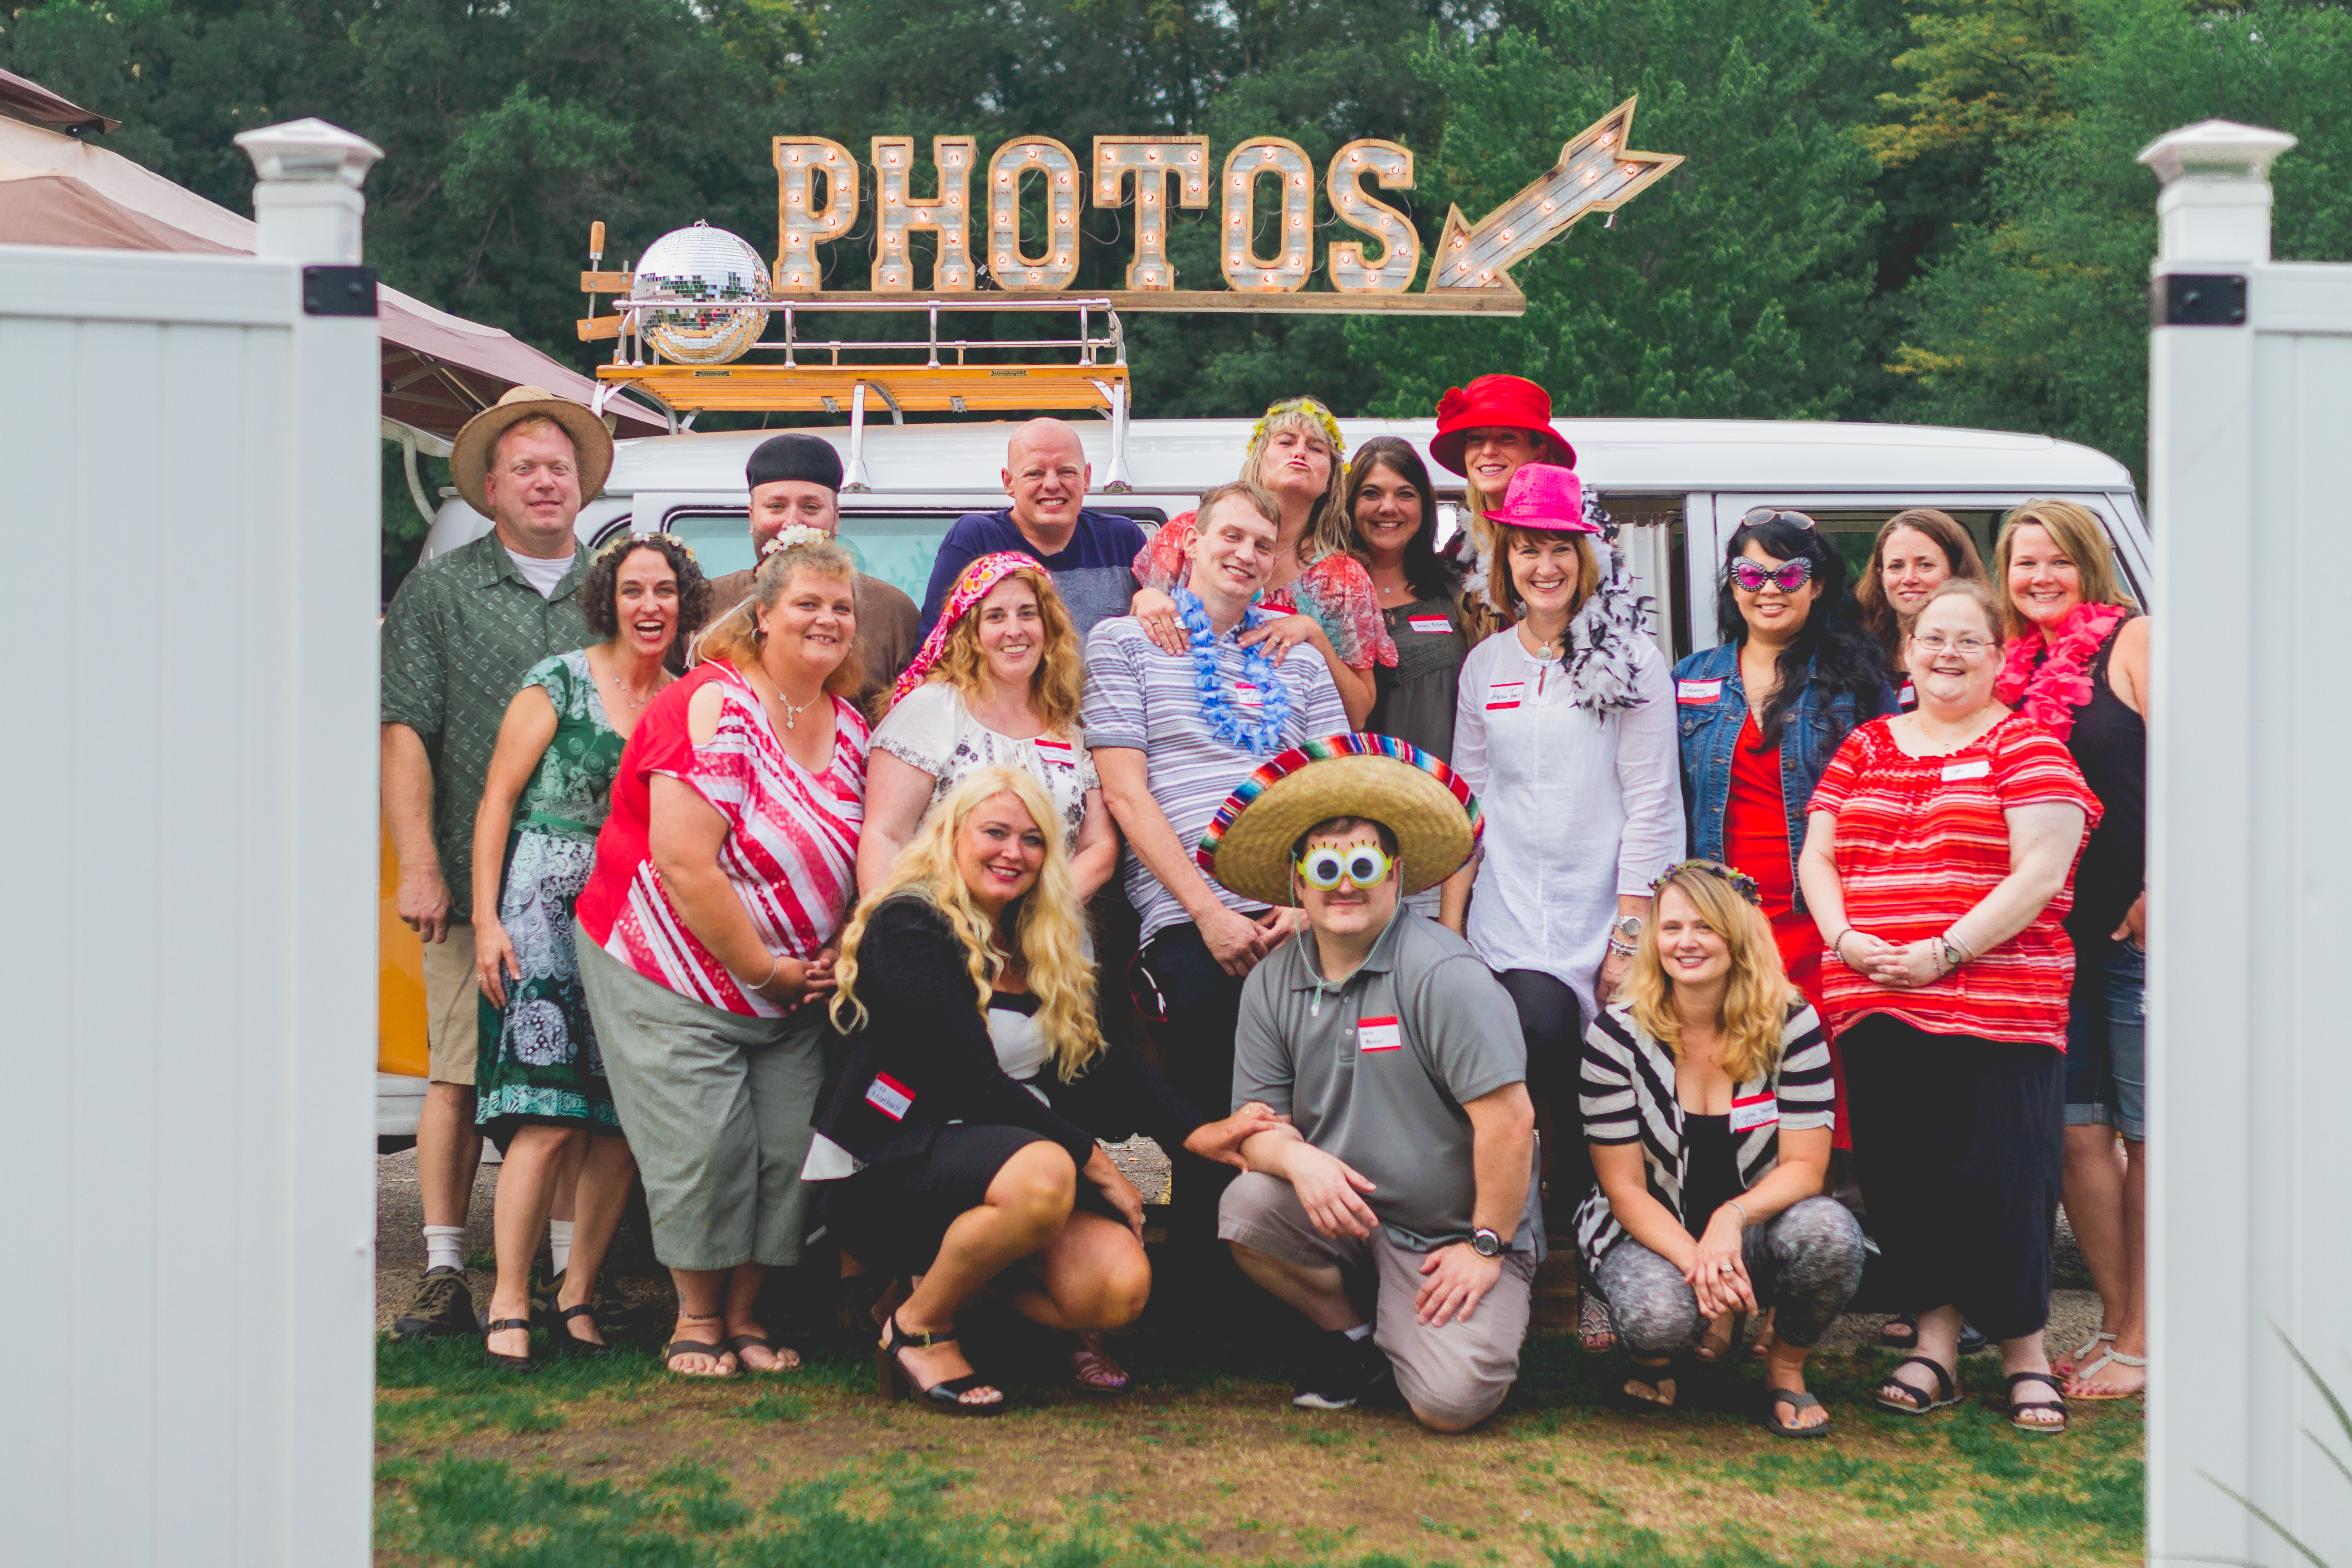 the dock at bayview | Volkswagen Bus | VW Photo booth bus | Southwest Michigan Event | Photo booth bus | west Michigan event | vintage | bohemian wedding | hippie style | 77 Kombi | air cooled | Michigan photographer | michigan events | barefoot wedding | outdoor wedding ideas | corporate event planner | michigan venue | west michigan event | grand rapids event | lakeshore wedding | class reunion